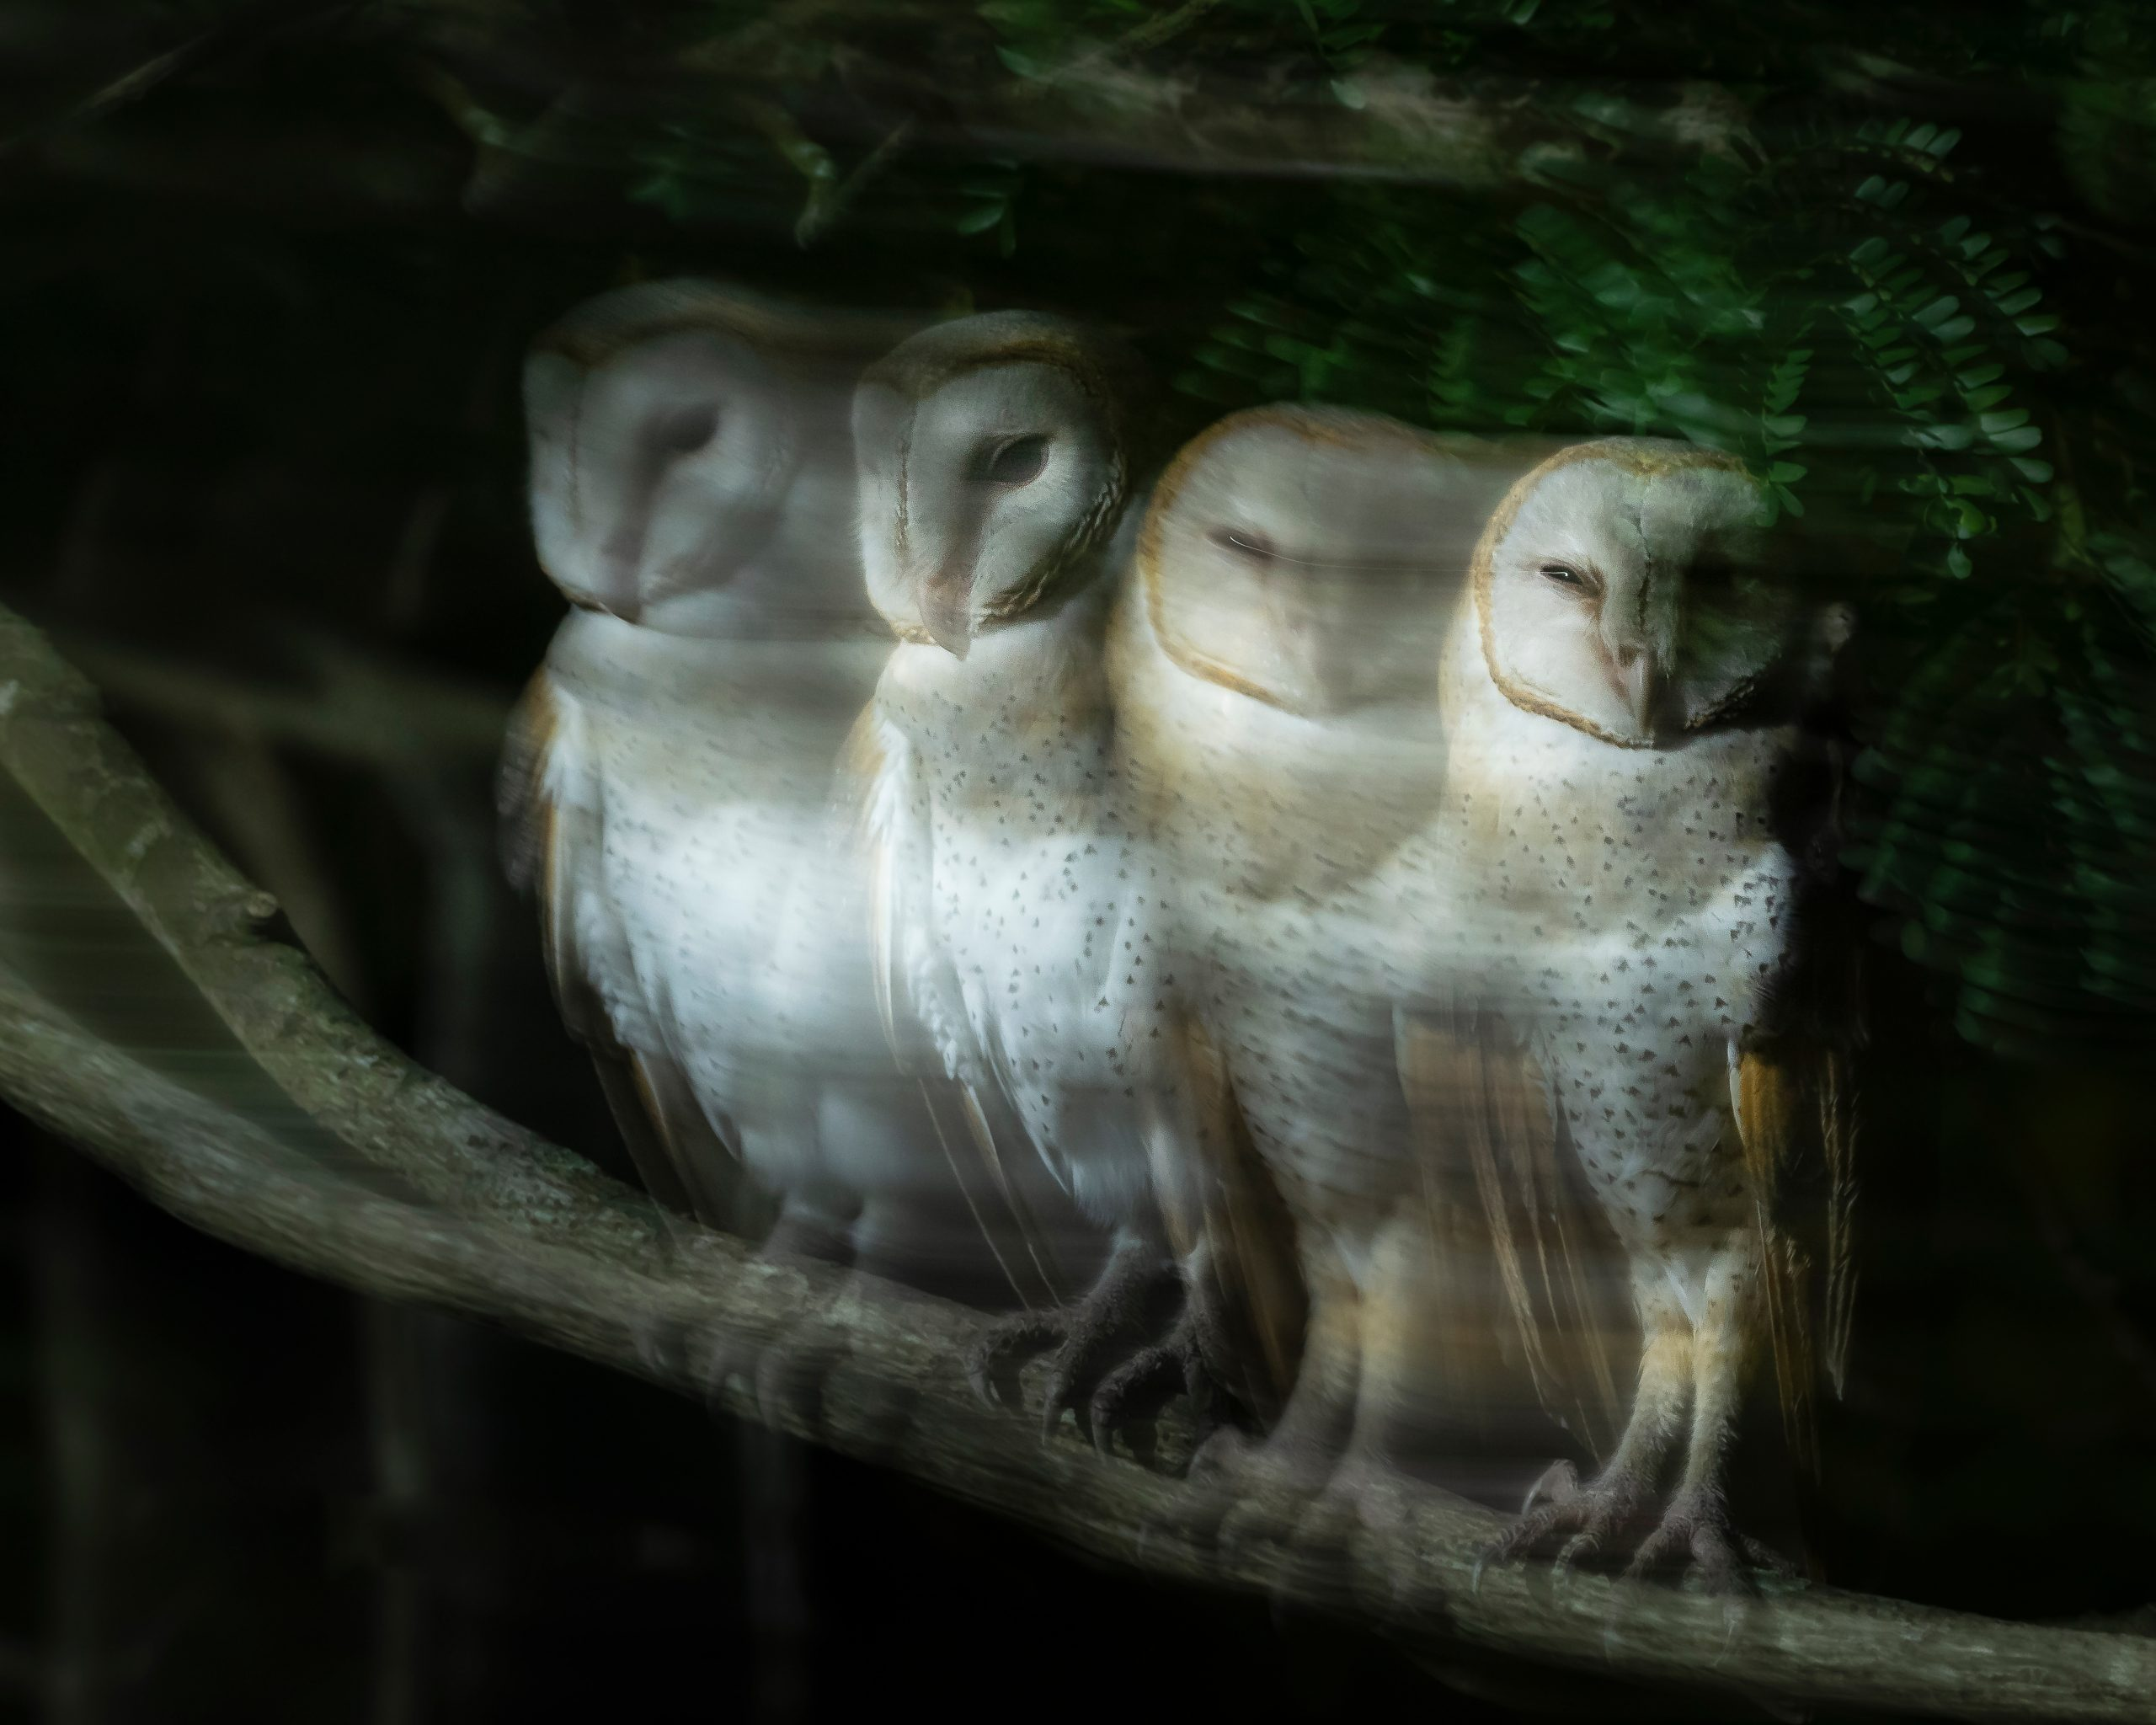 Slow shutter Click of Owl